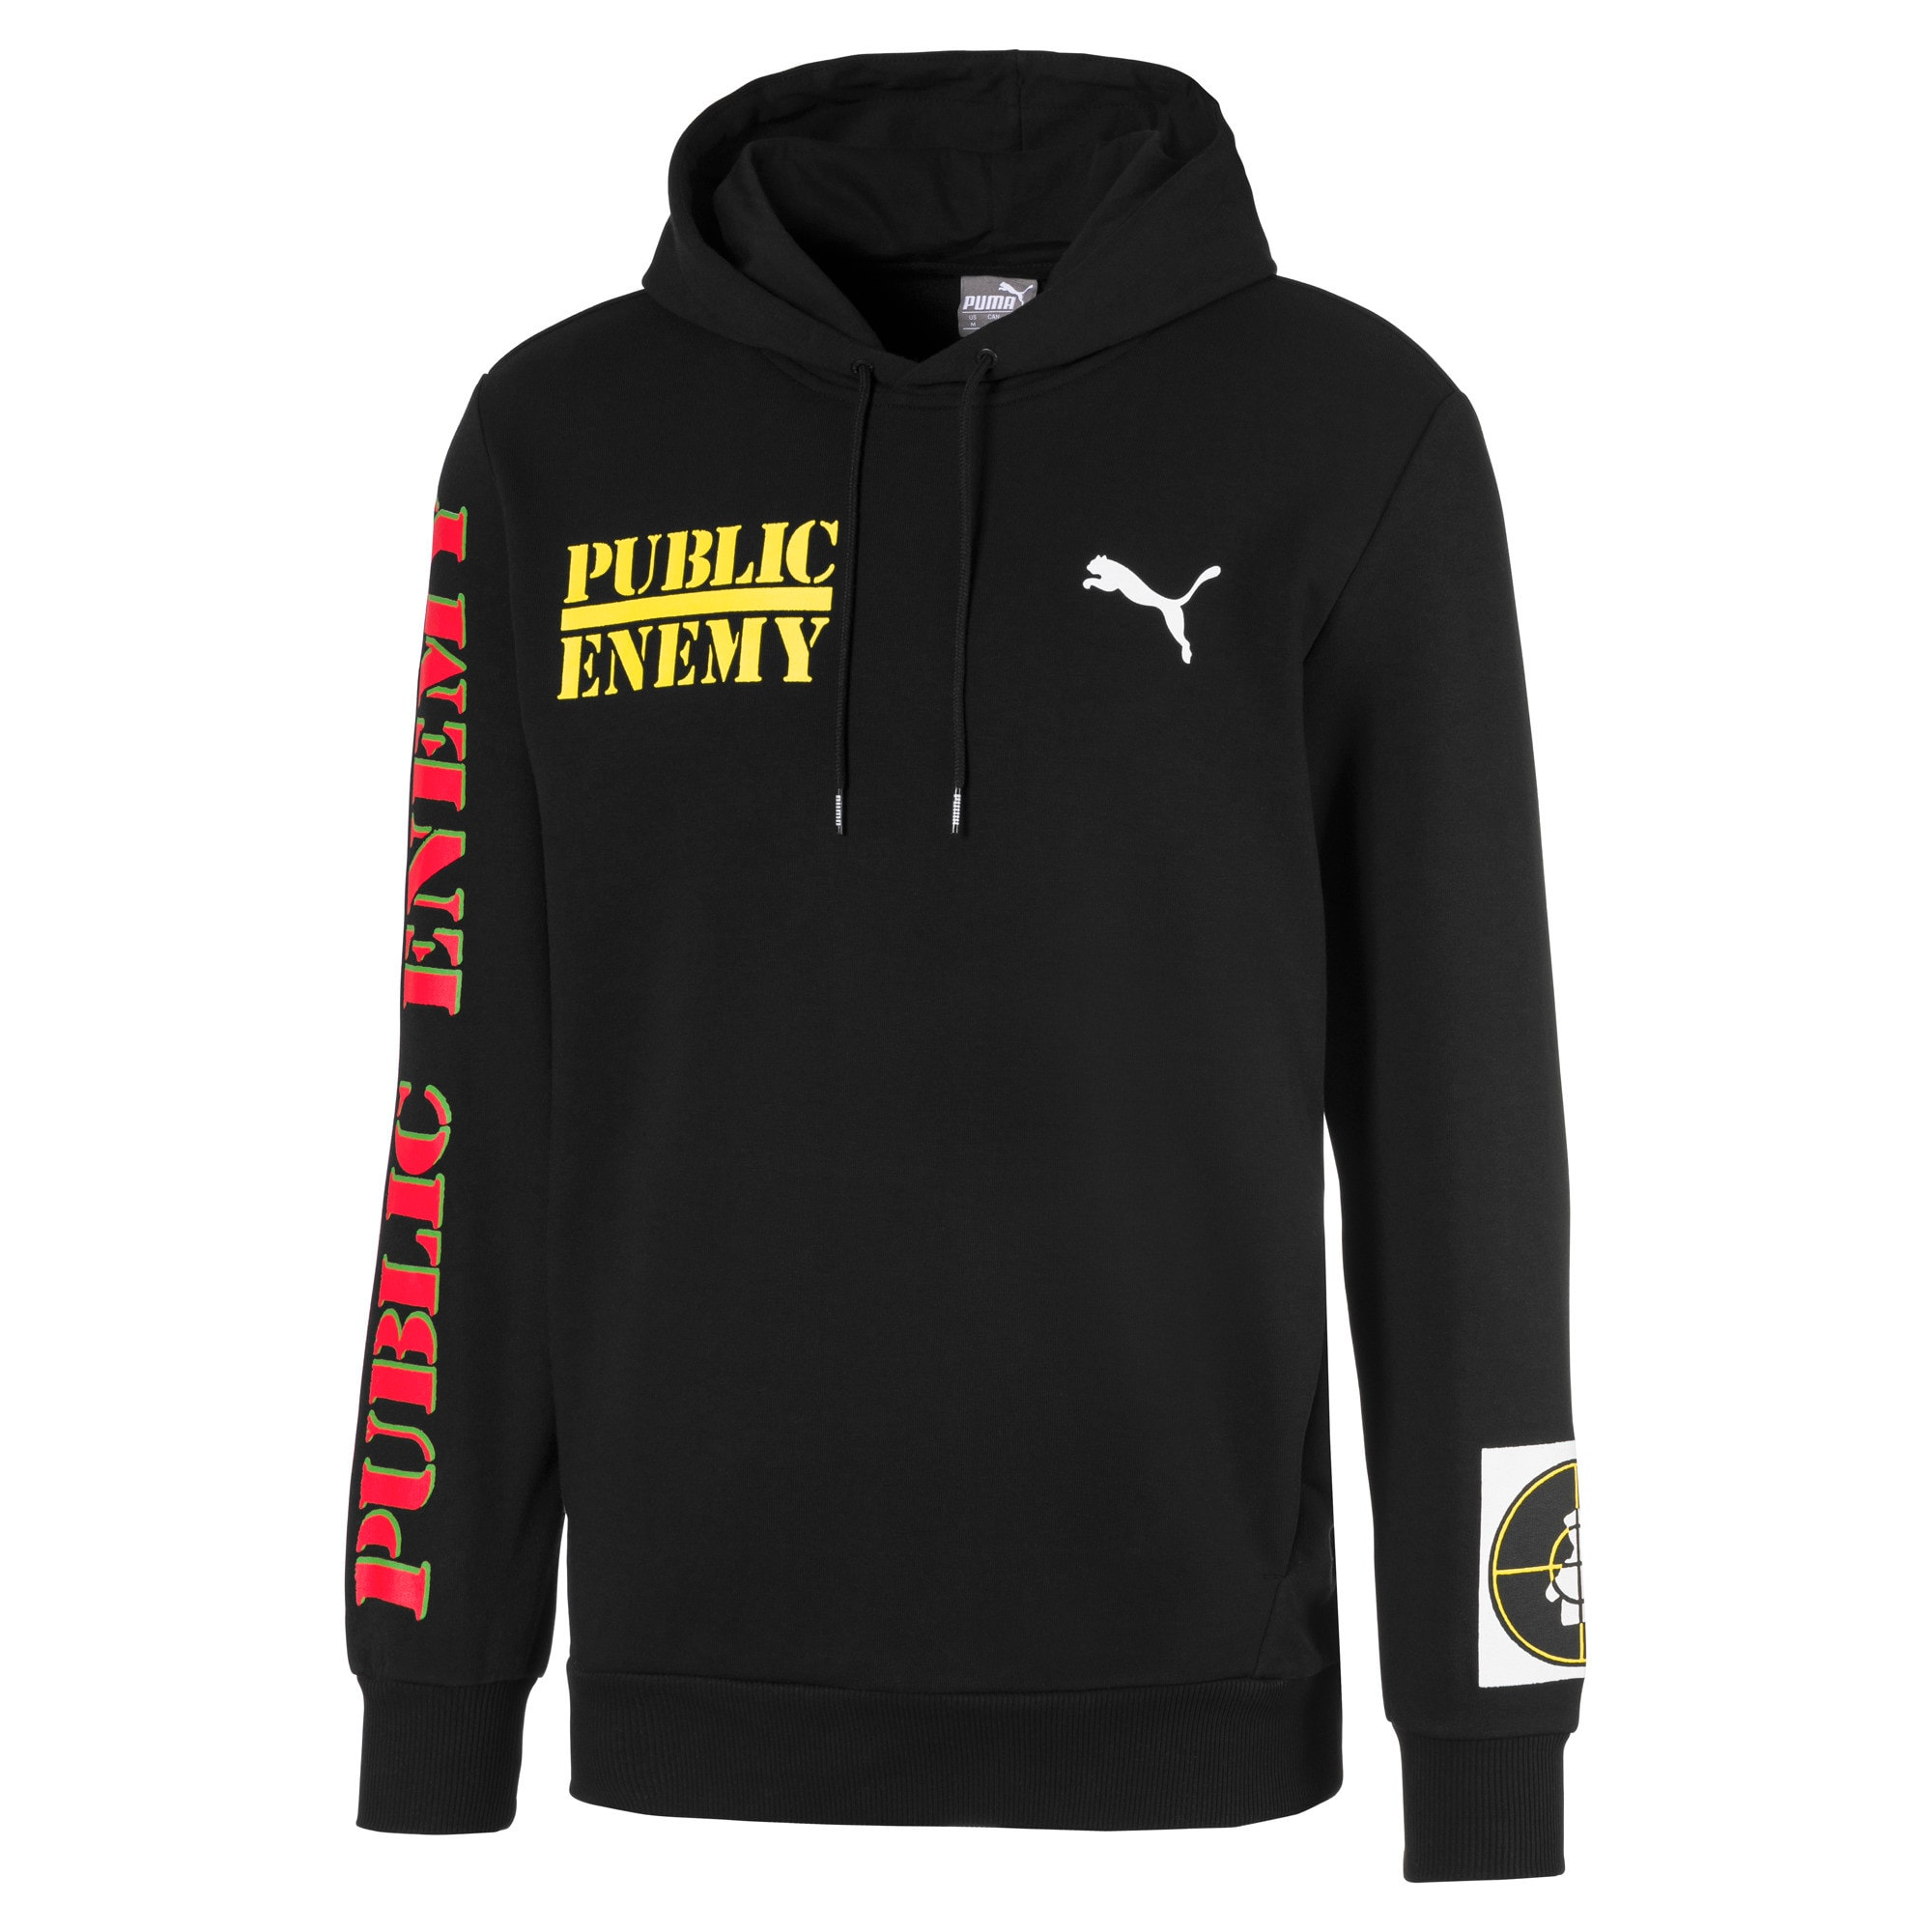 Thumbnail 1 of PUMA x PUBLIC ENEMY Men's Hoodie, Puma Black, medium